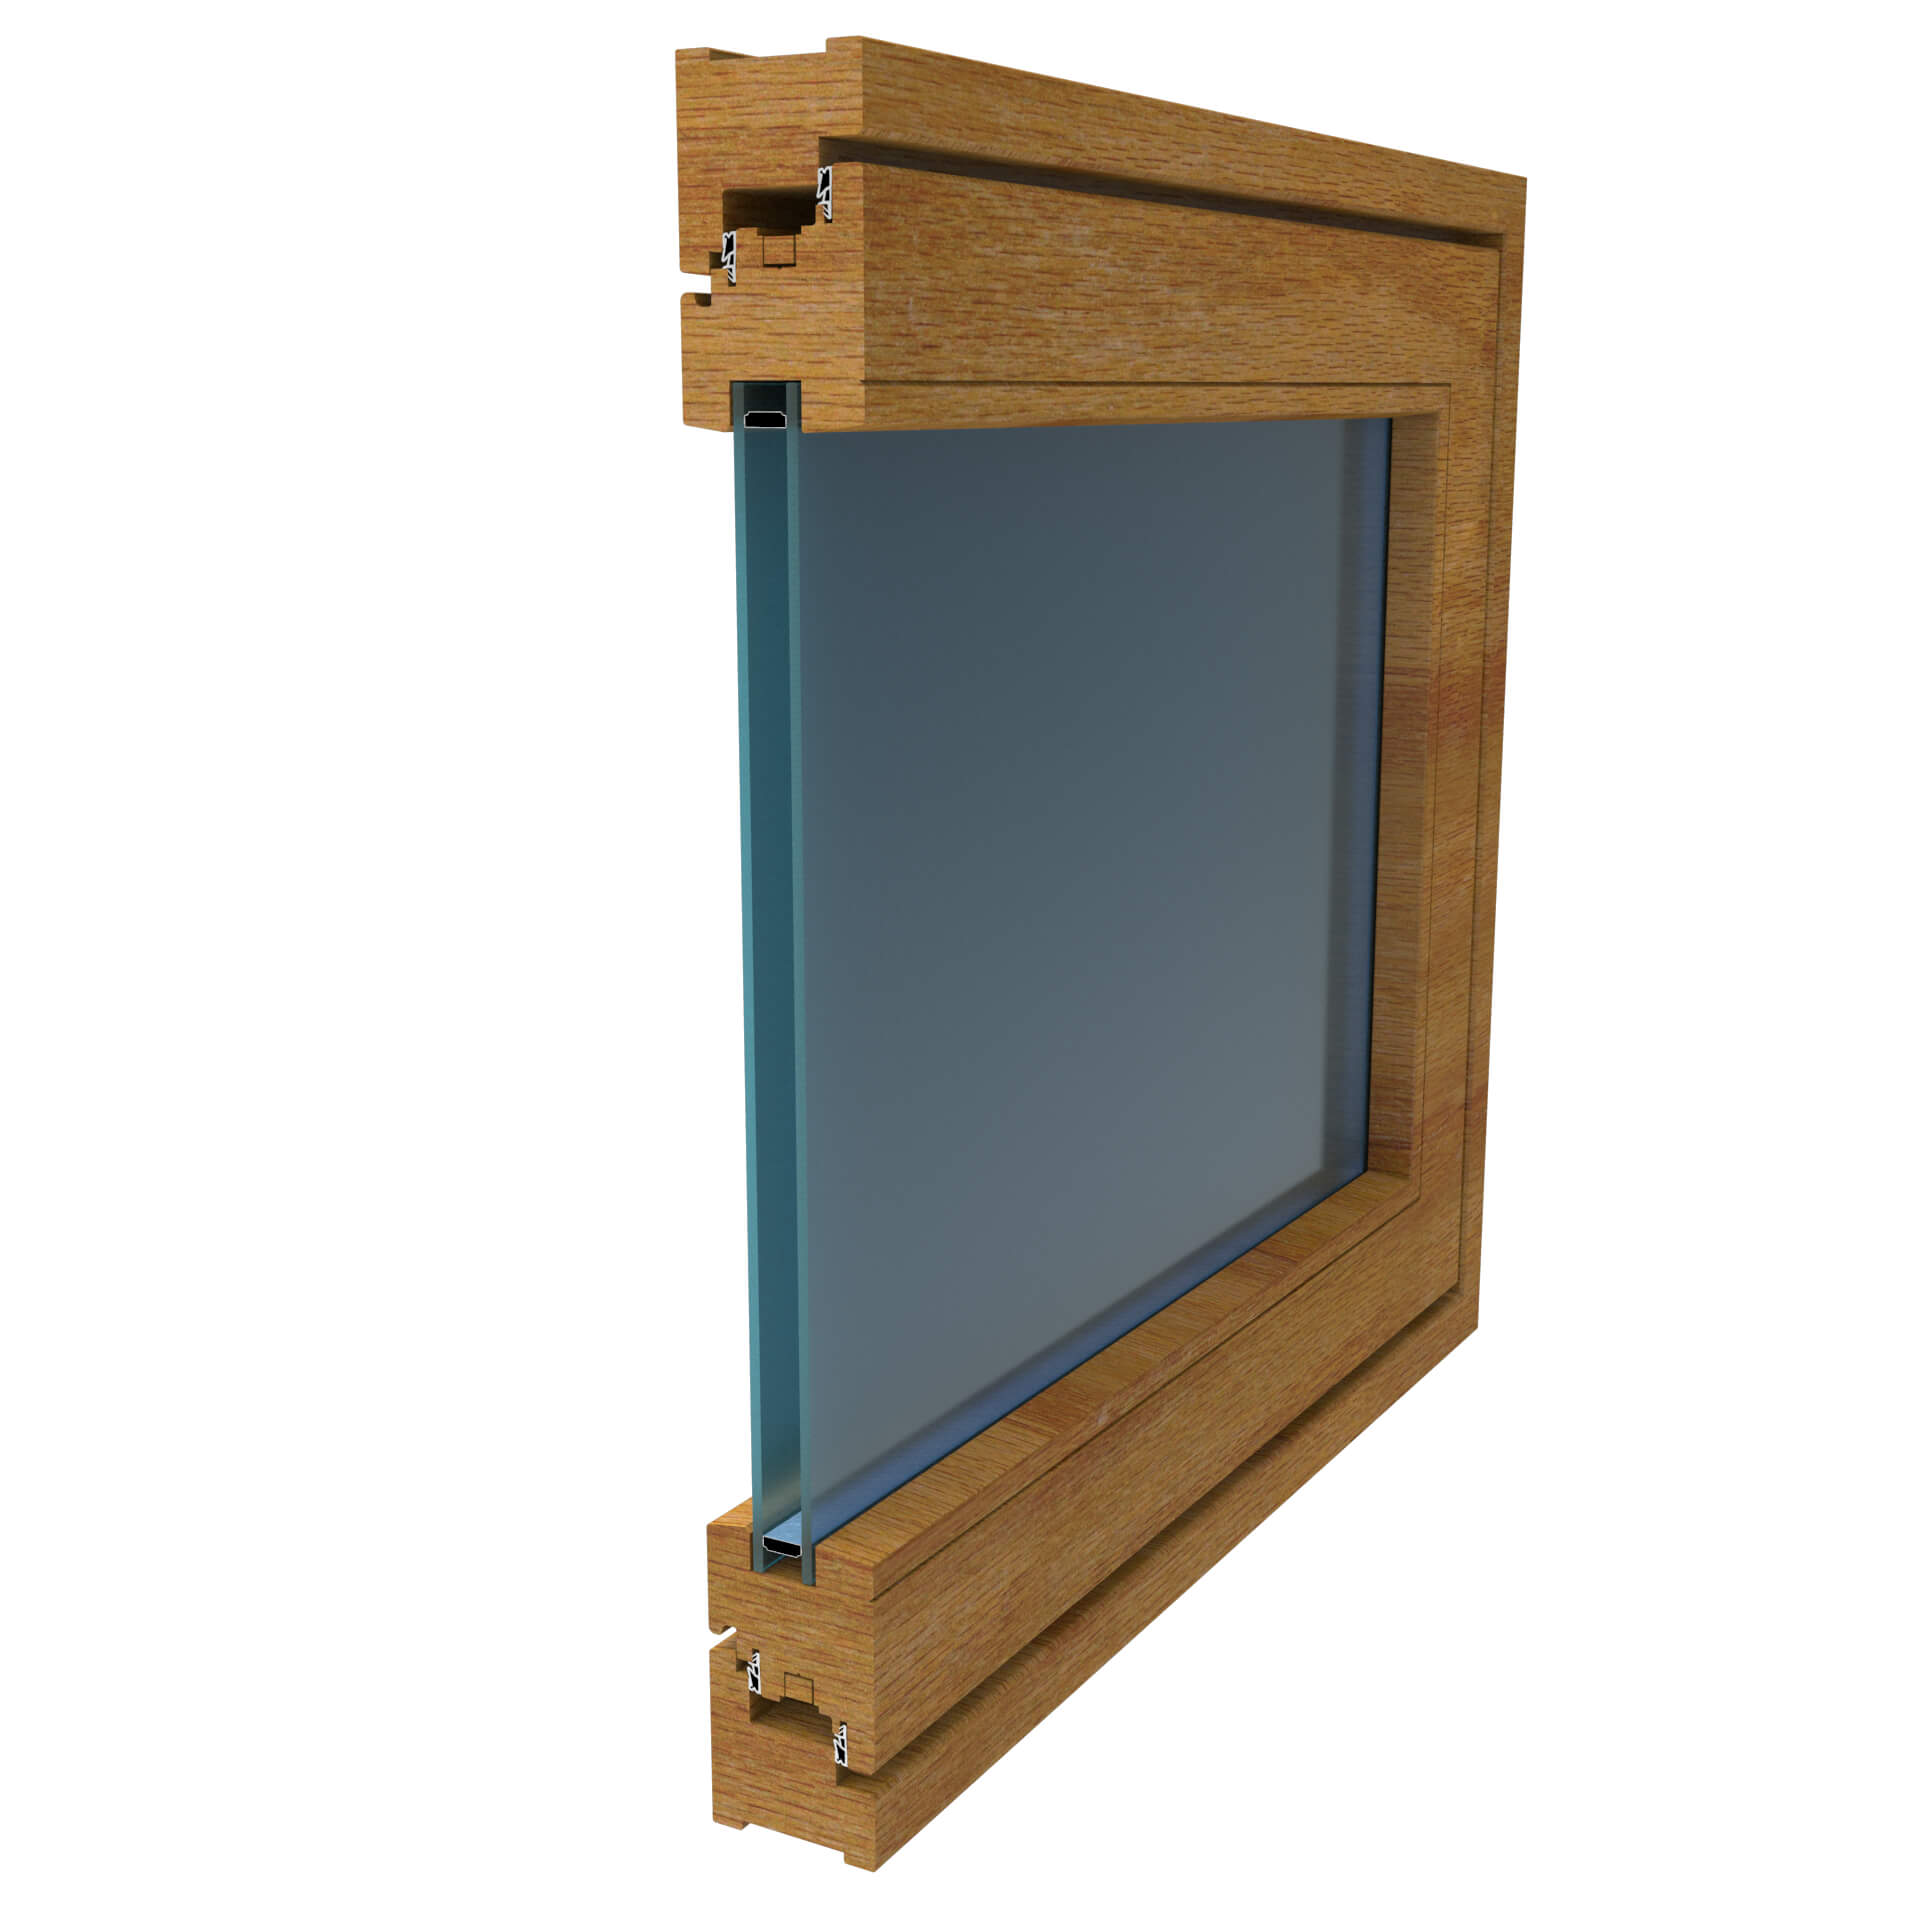 WINDOR® Holzfenster WIN WOOD 68® Außenprofil